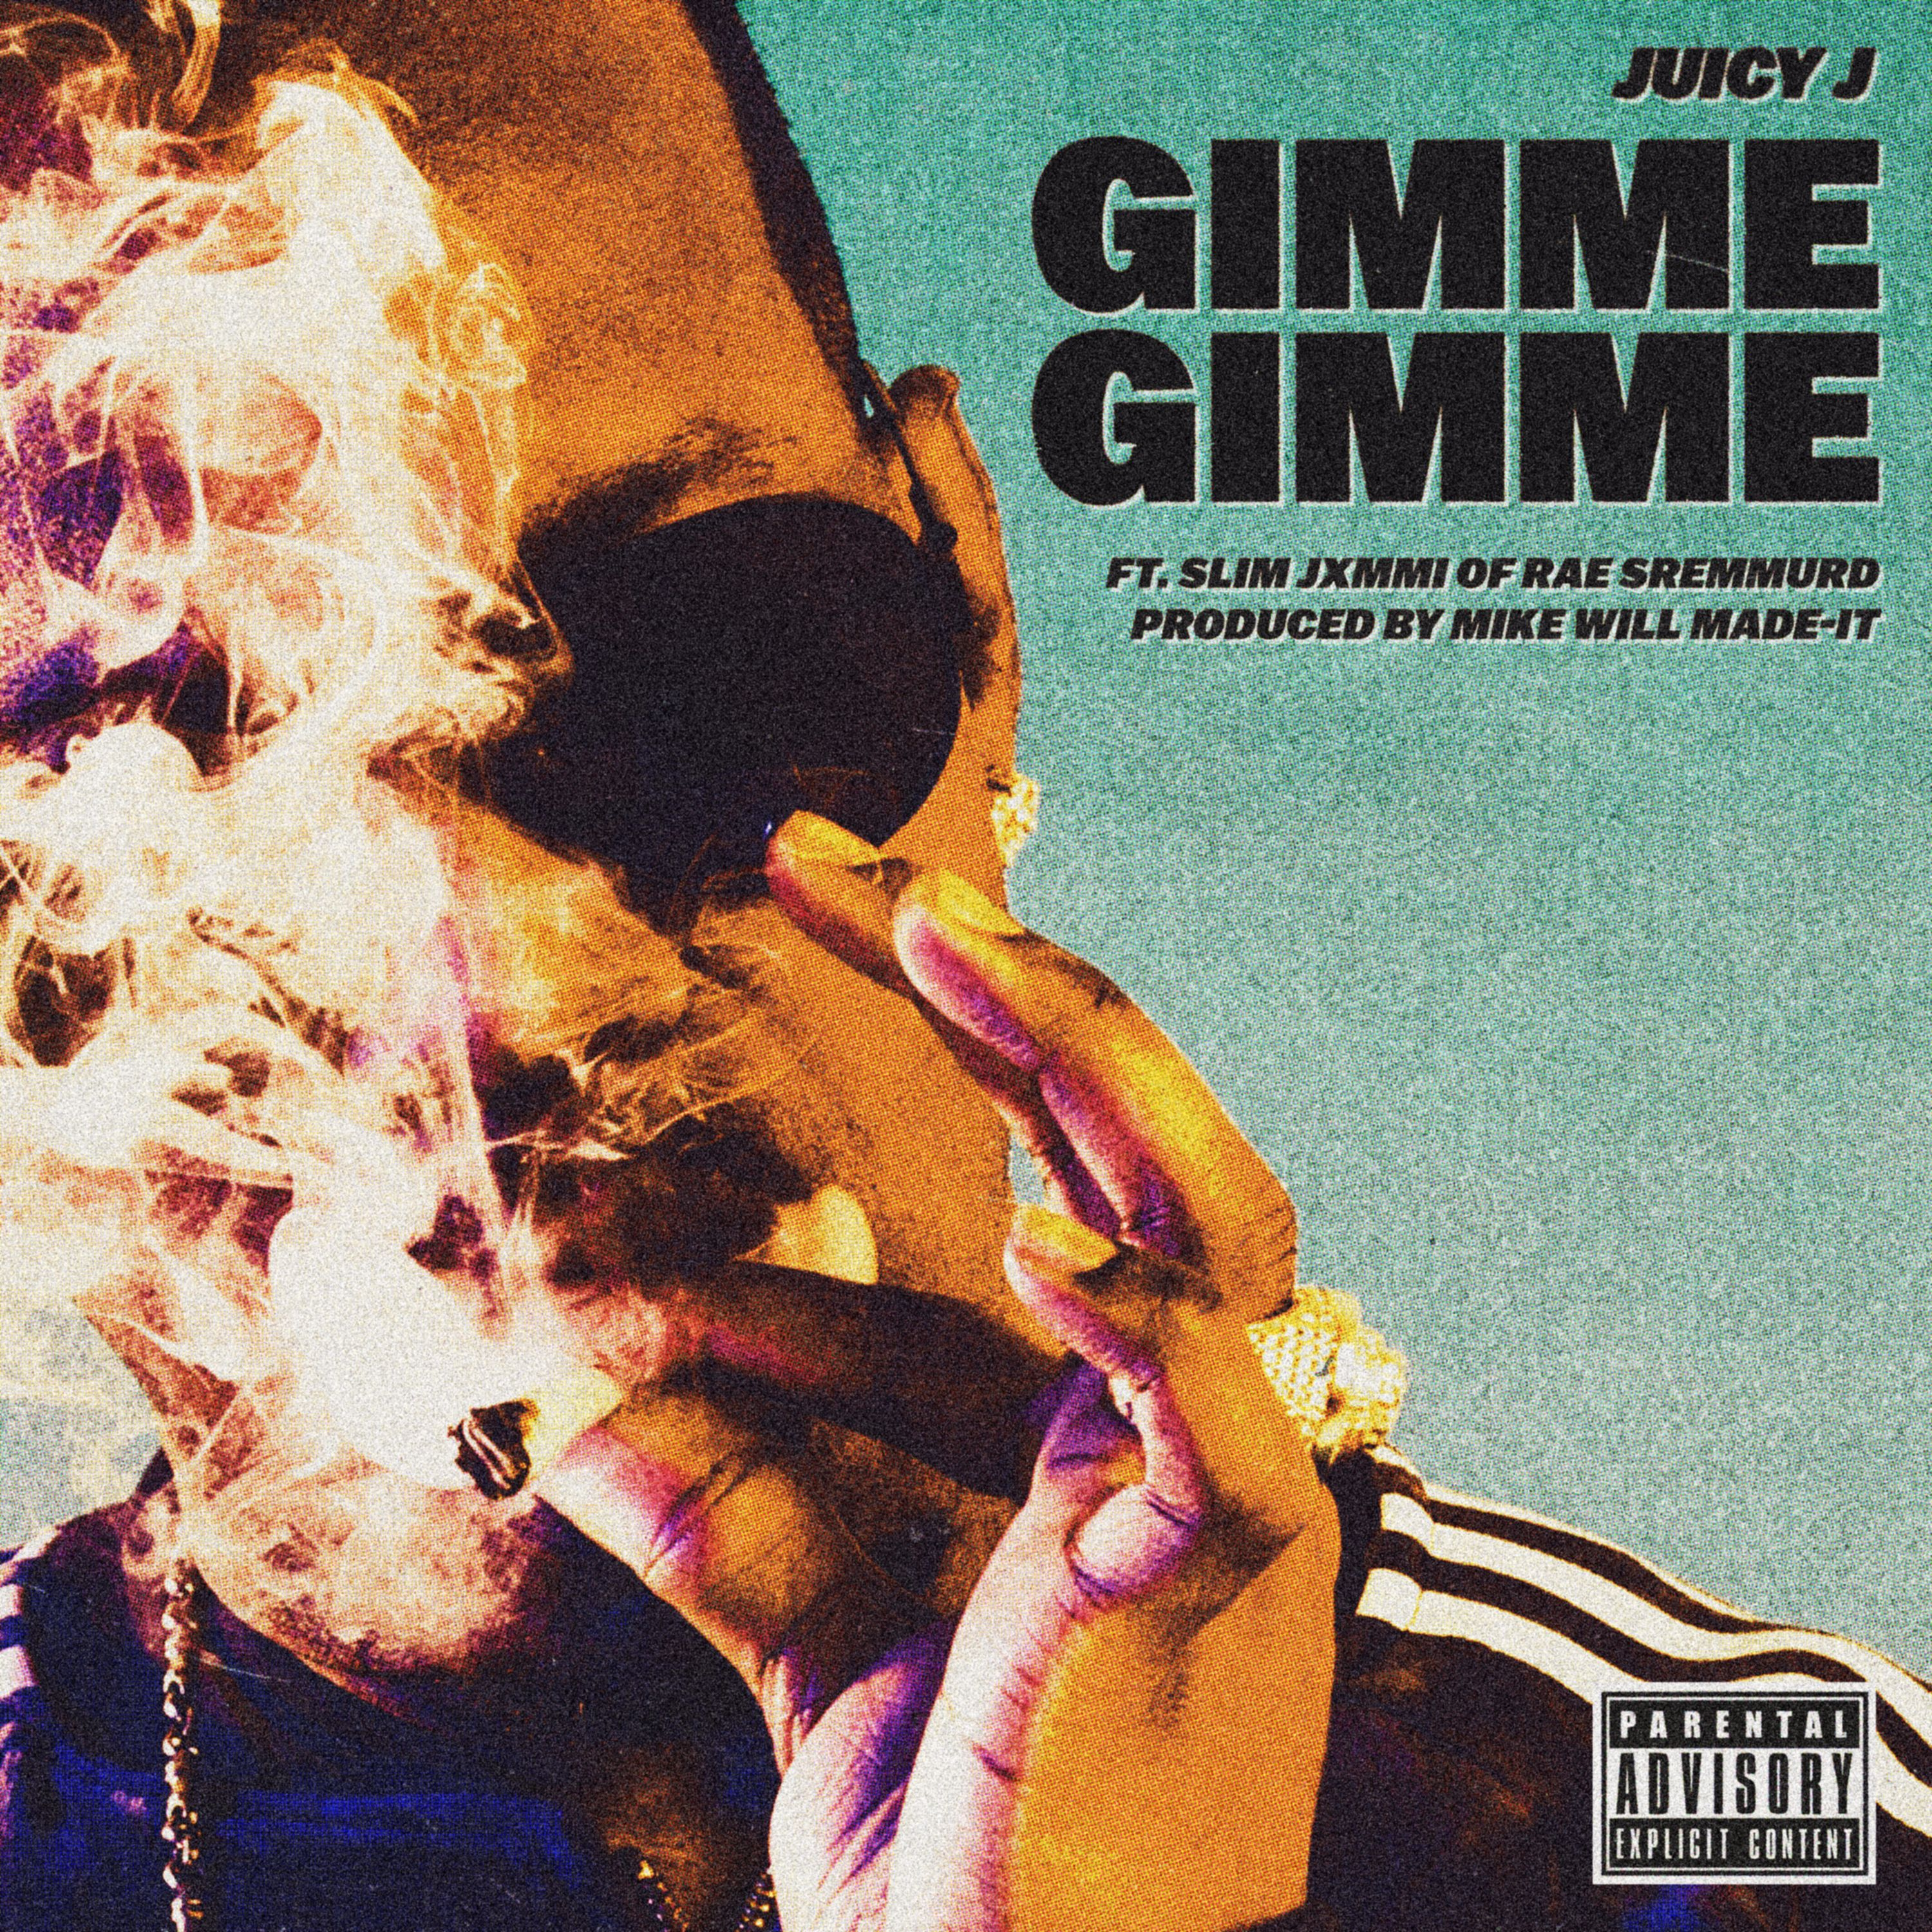 juicy-j-gimme-gimme-new-song-ft-slim-jxmmi